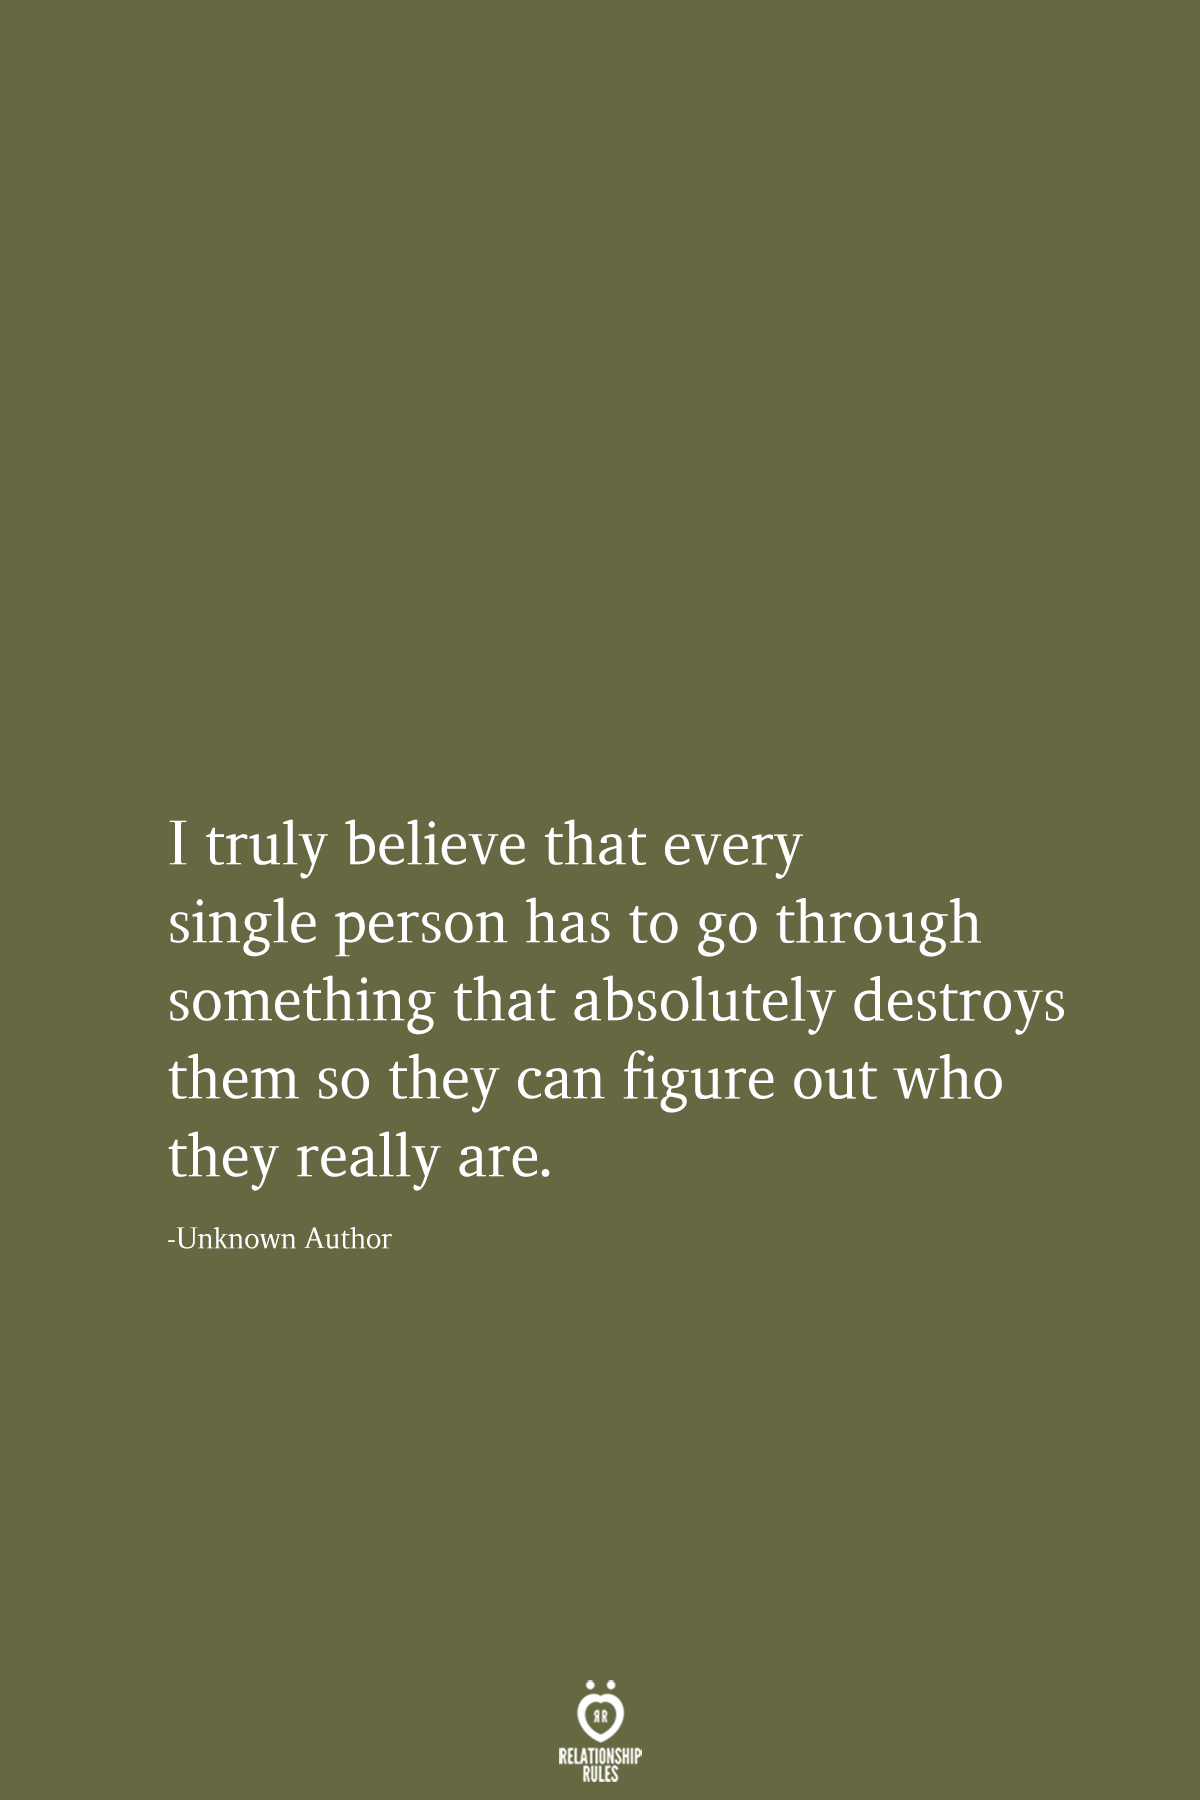 I truly believe that every single person,